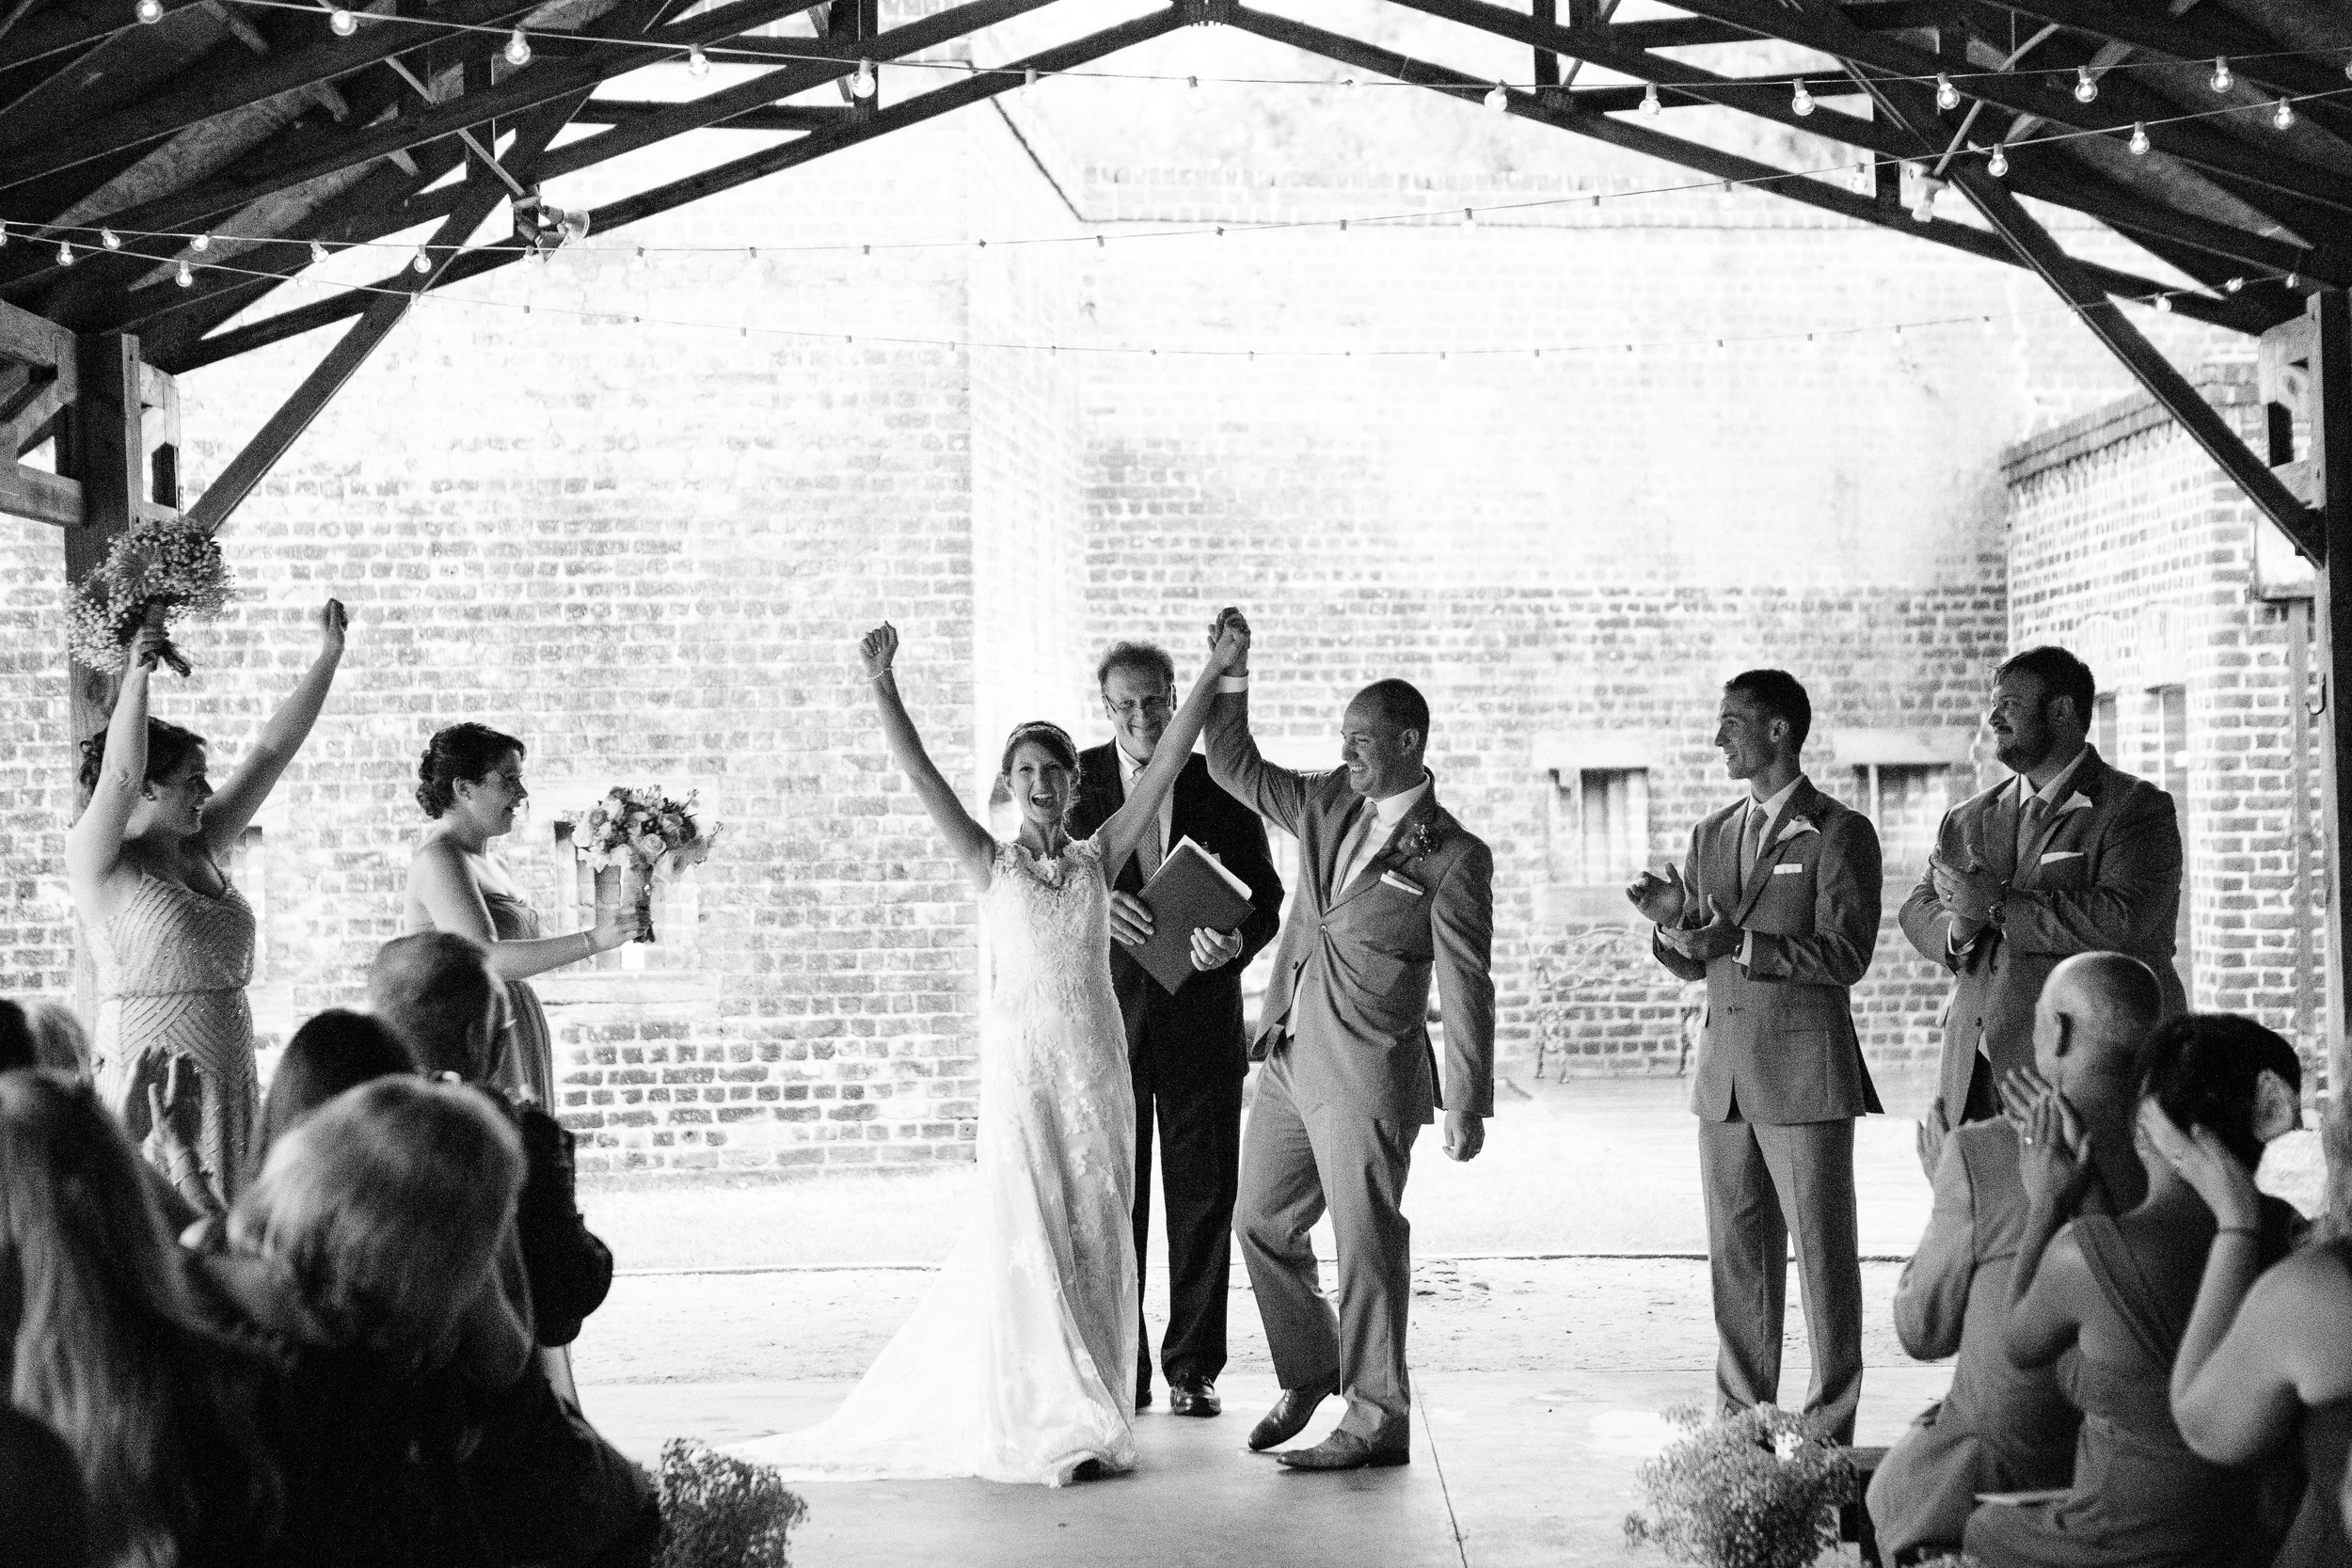 izzy-hudgins-photography-ivory-and-beau-bridal-boutique-savannah-wedding-planner-savannah-wedding-planning-old-fort-jackson-wedding-historic-wedding-savannah-wedding-florist-rustic-bohemian-wedding-savannah-wedding-savannah-weddings-32.jpg